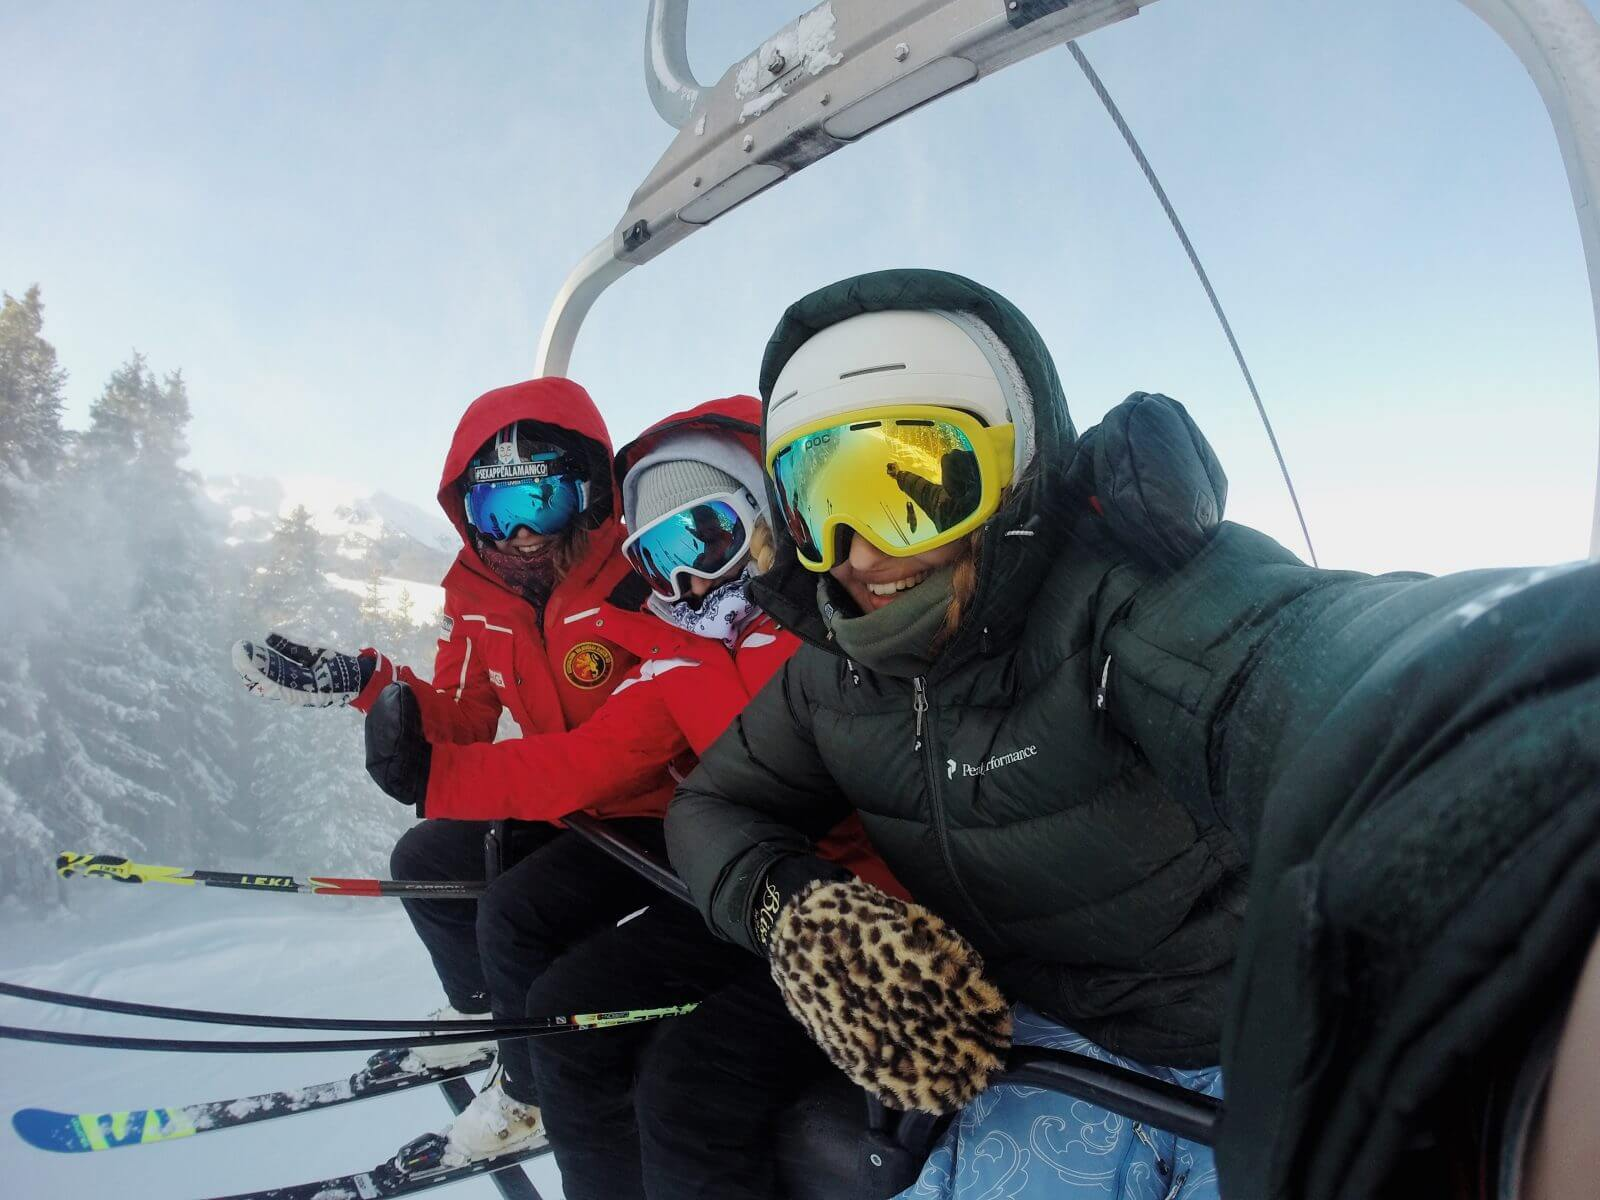 Friends on Chair Lift Skiing